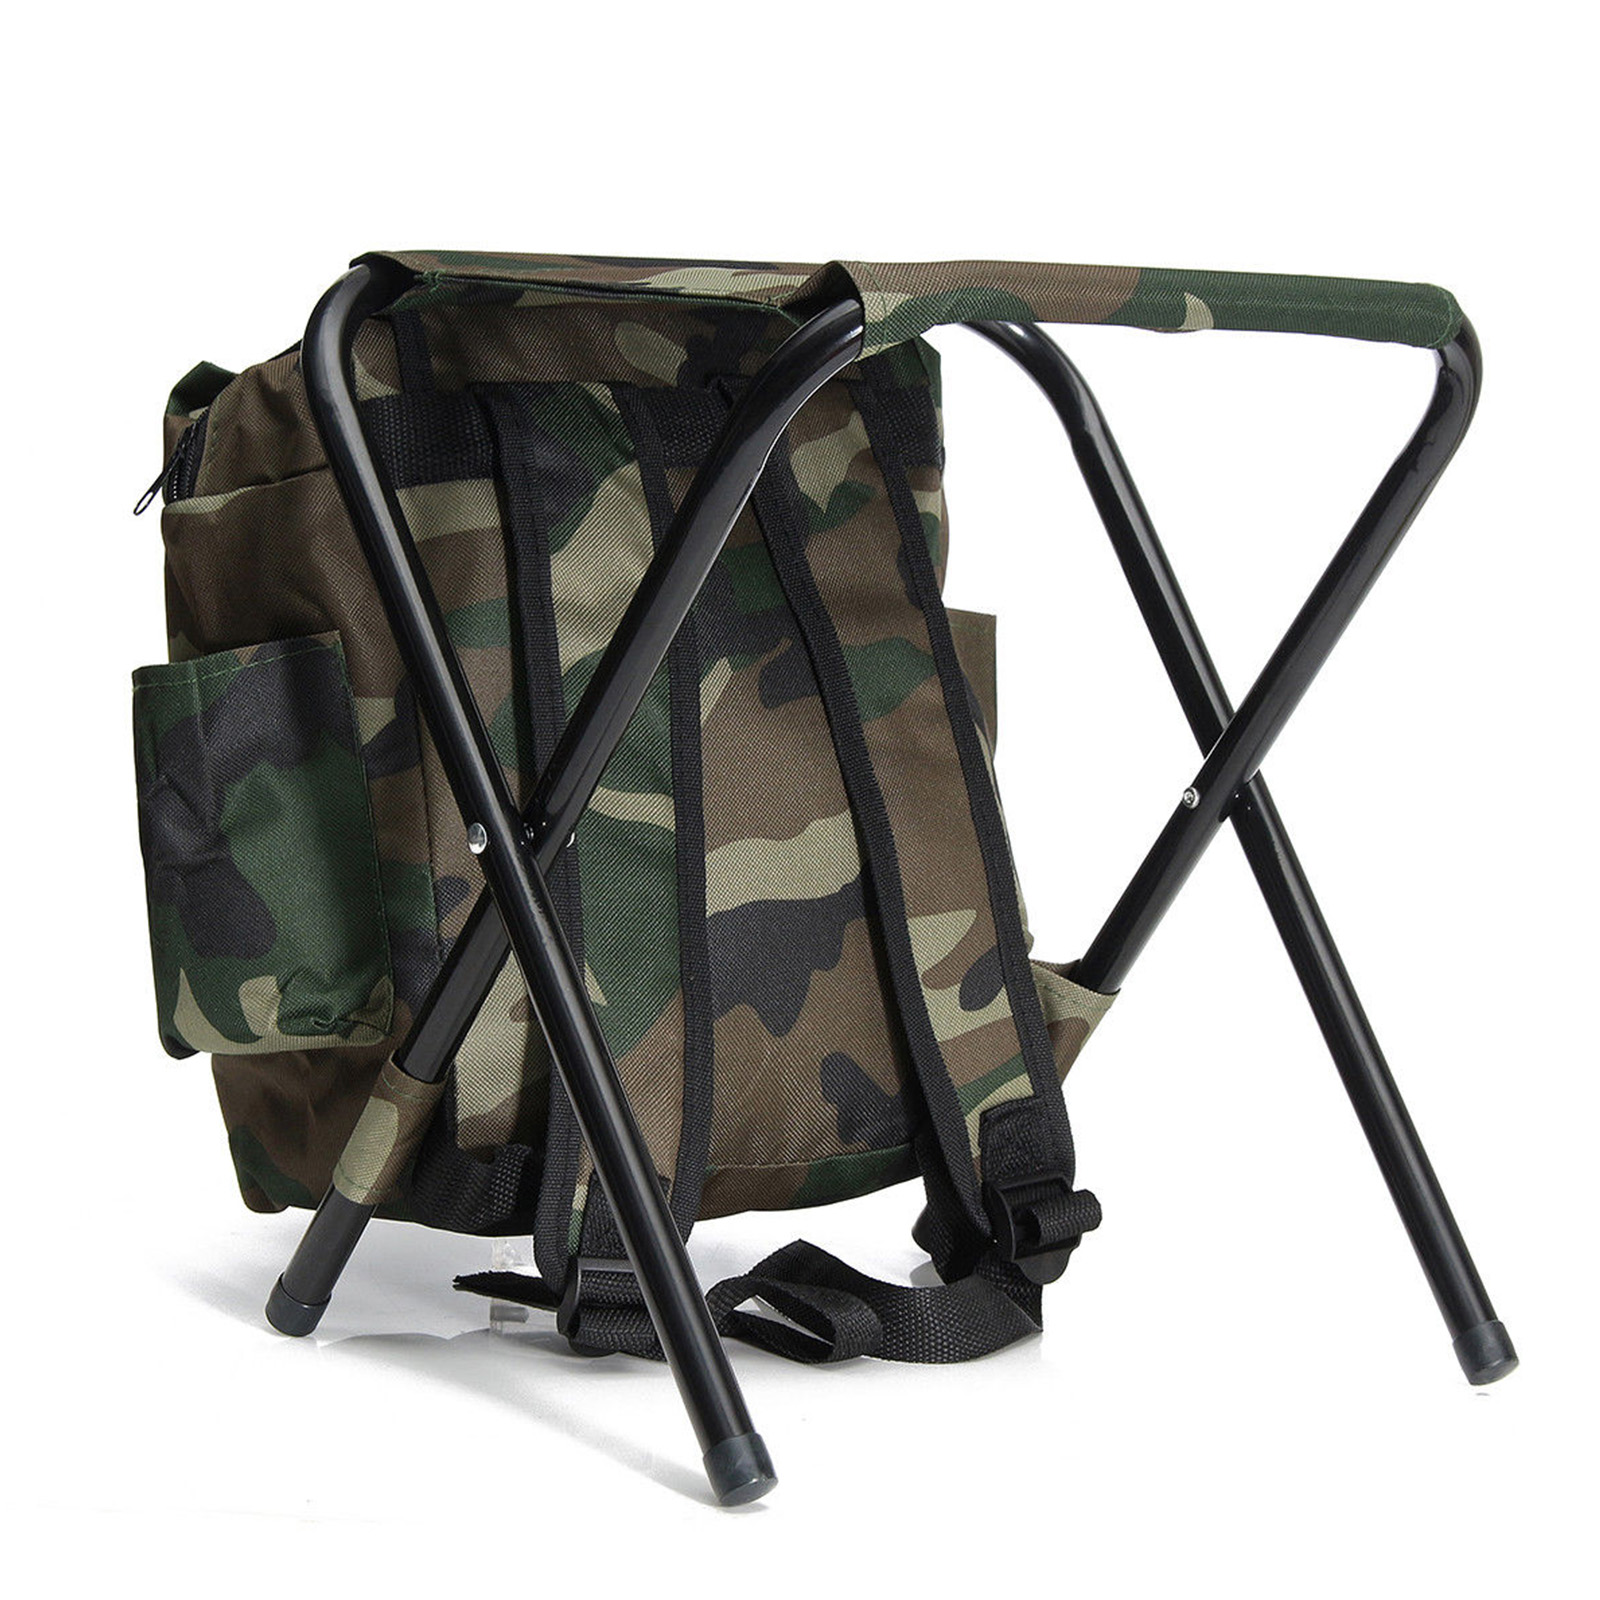 fishing chair rucksack best office for long hours reddit 2in1 folding stool backpack seat hunting